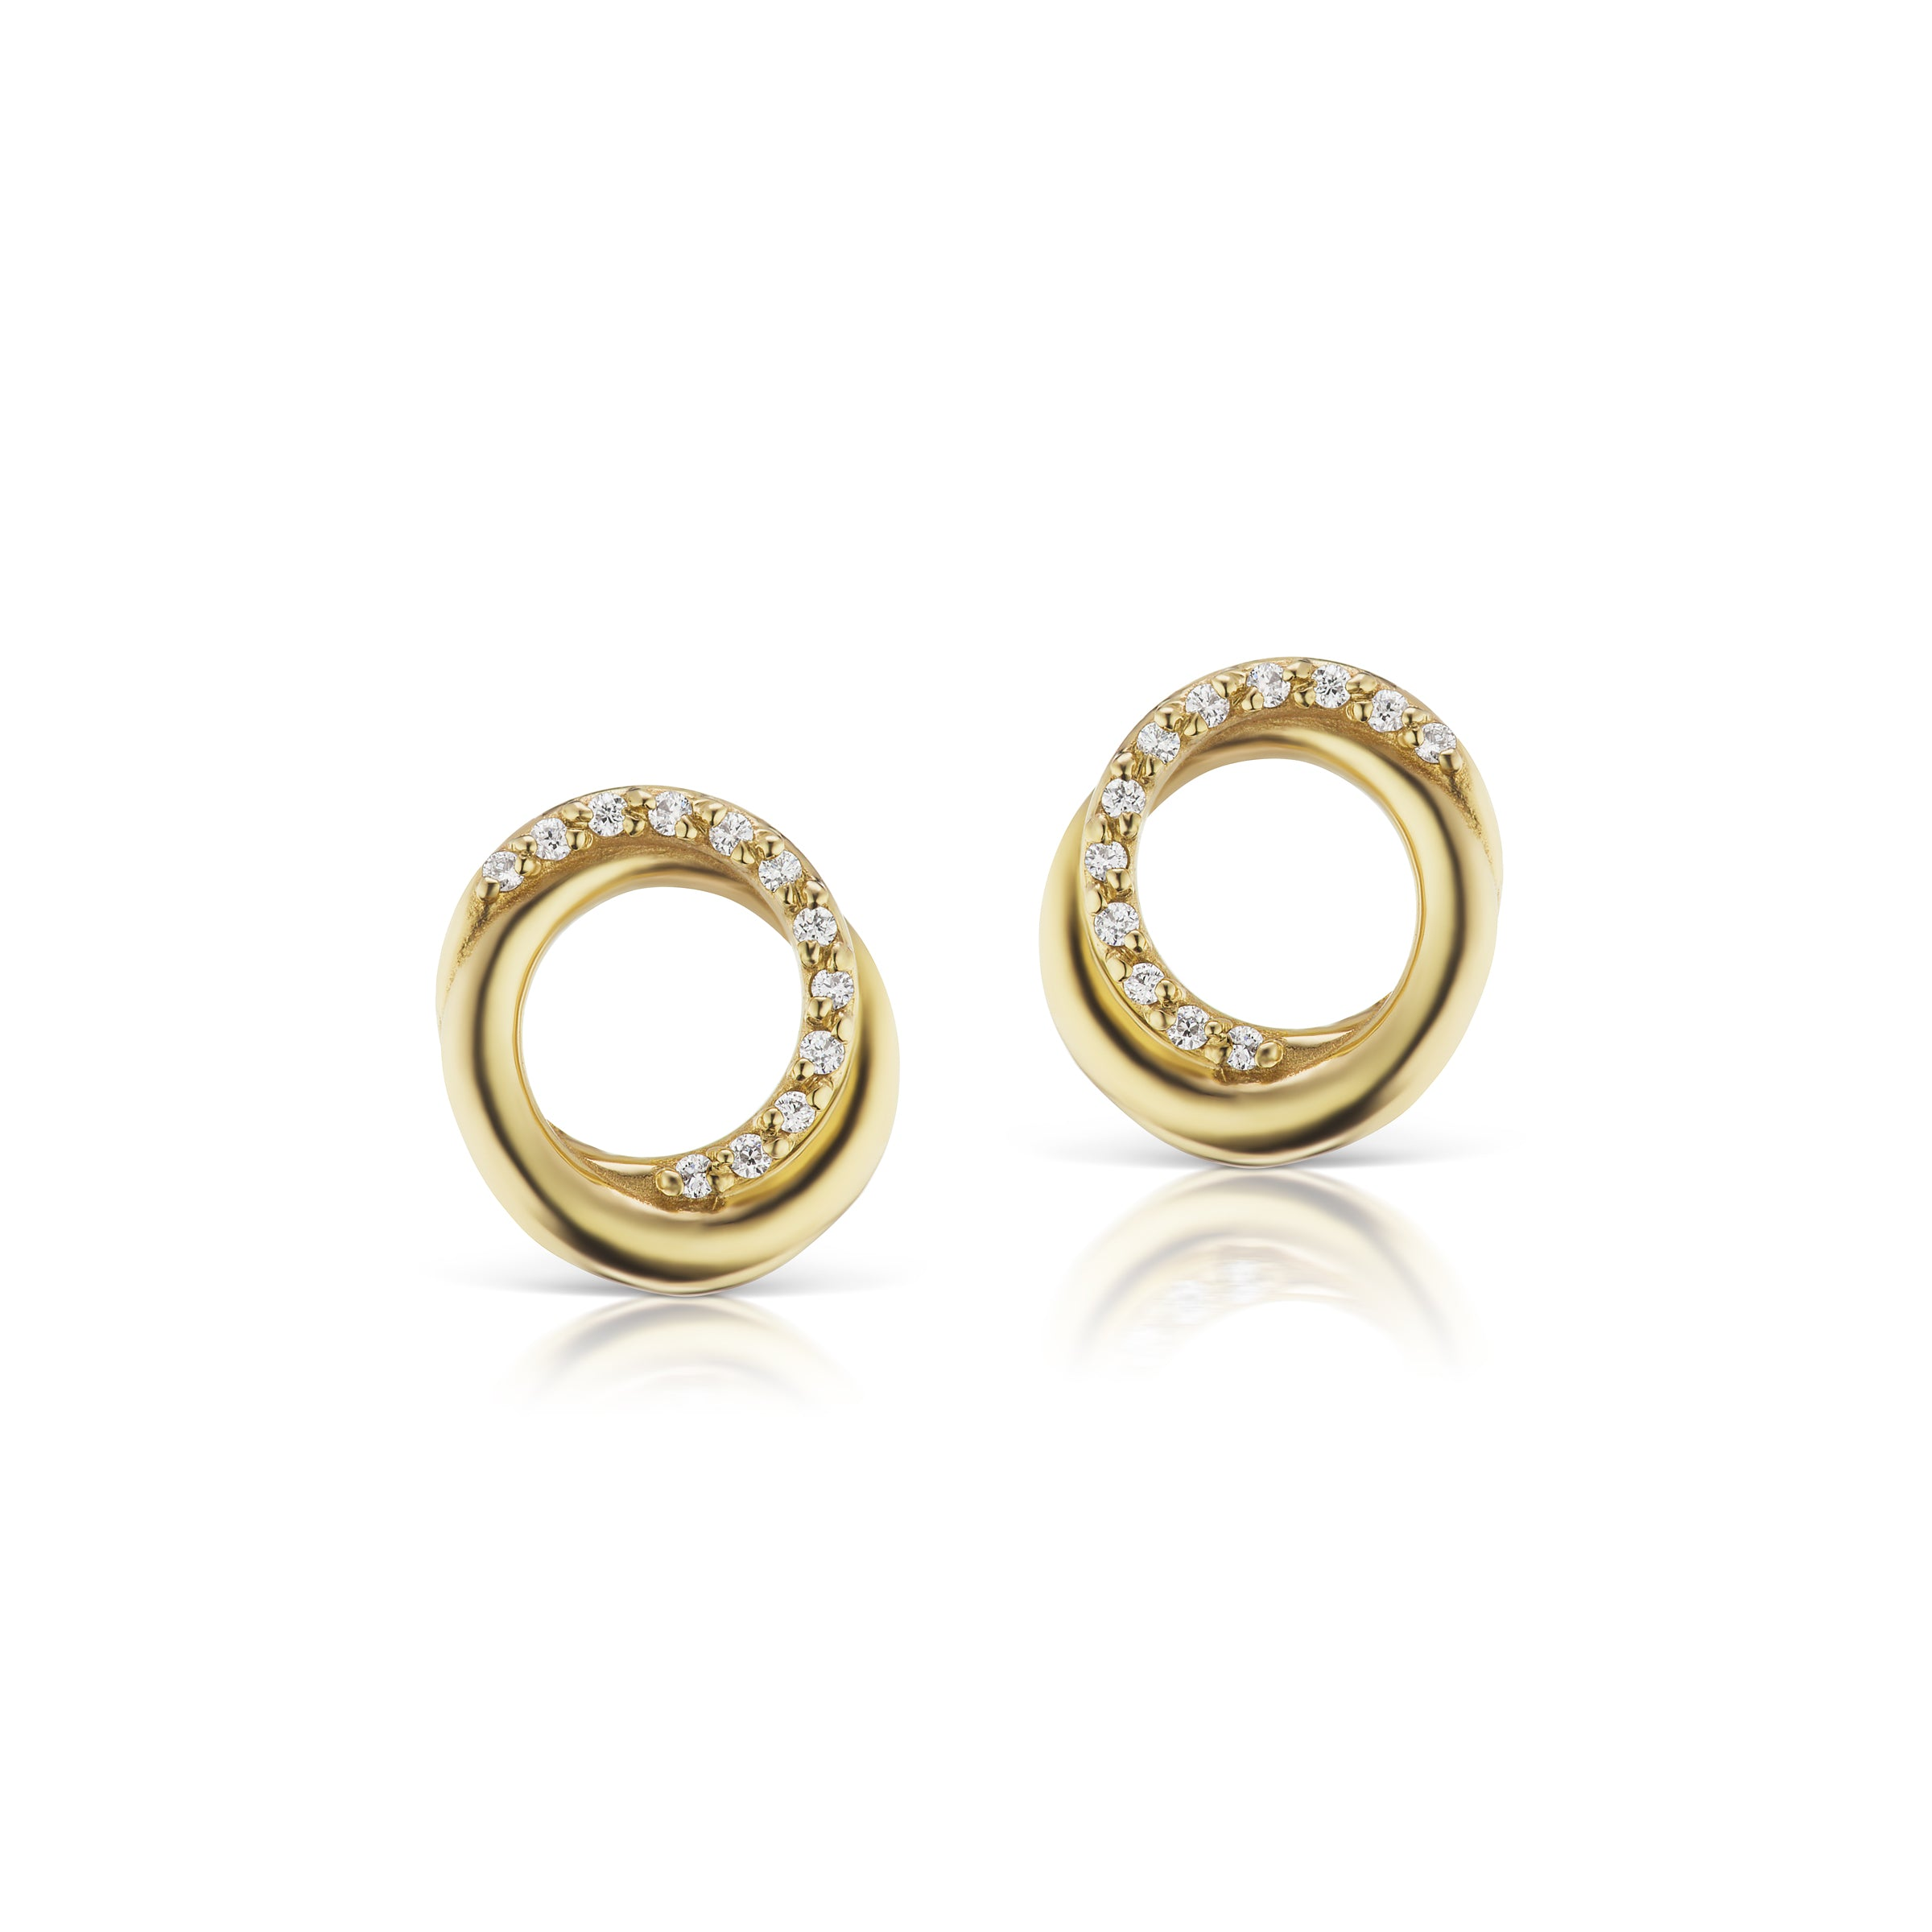 The Gold Diamond Encircle Studs